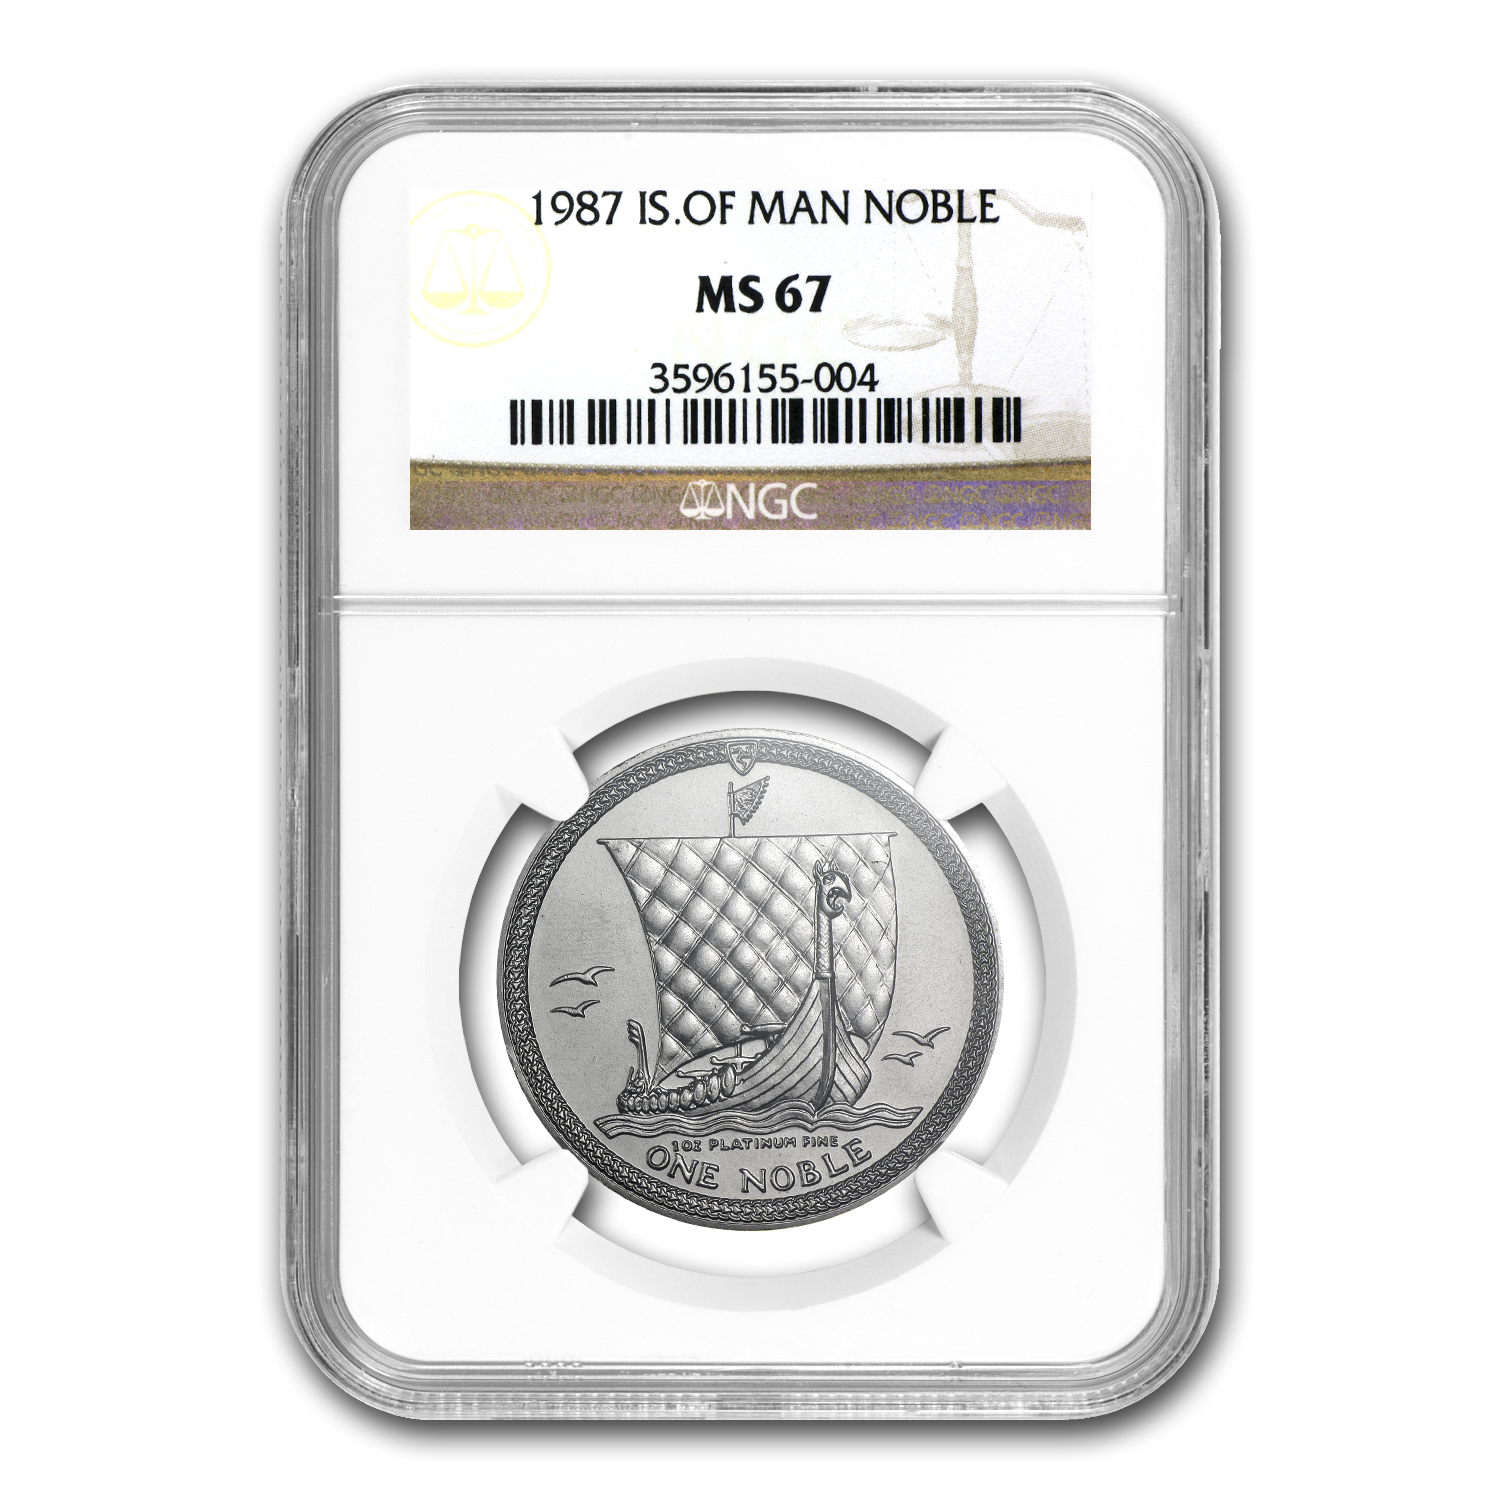 1987 Isle of Man 1 oz Platinum Noble MS-67 NGC